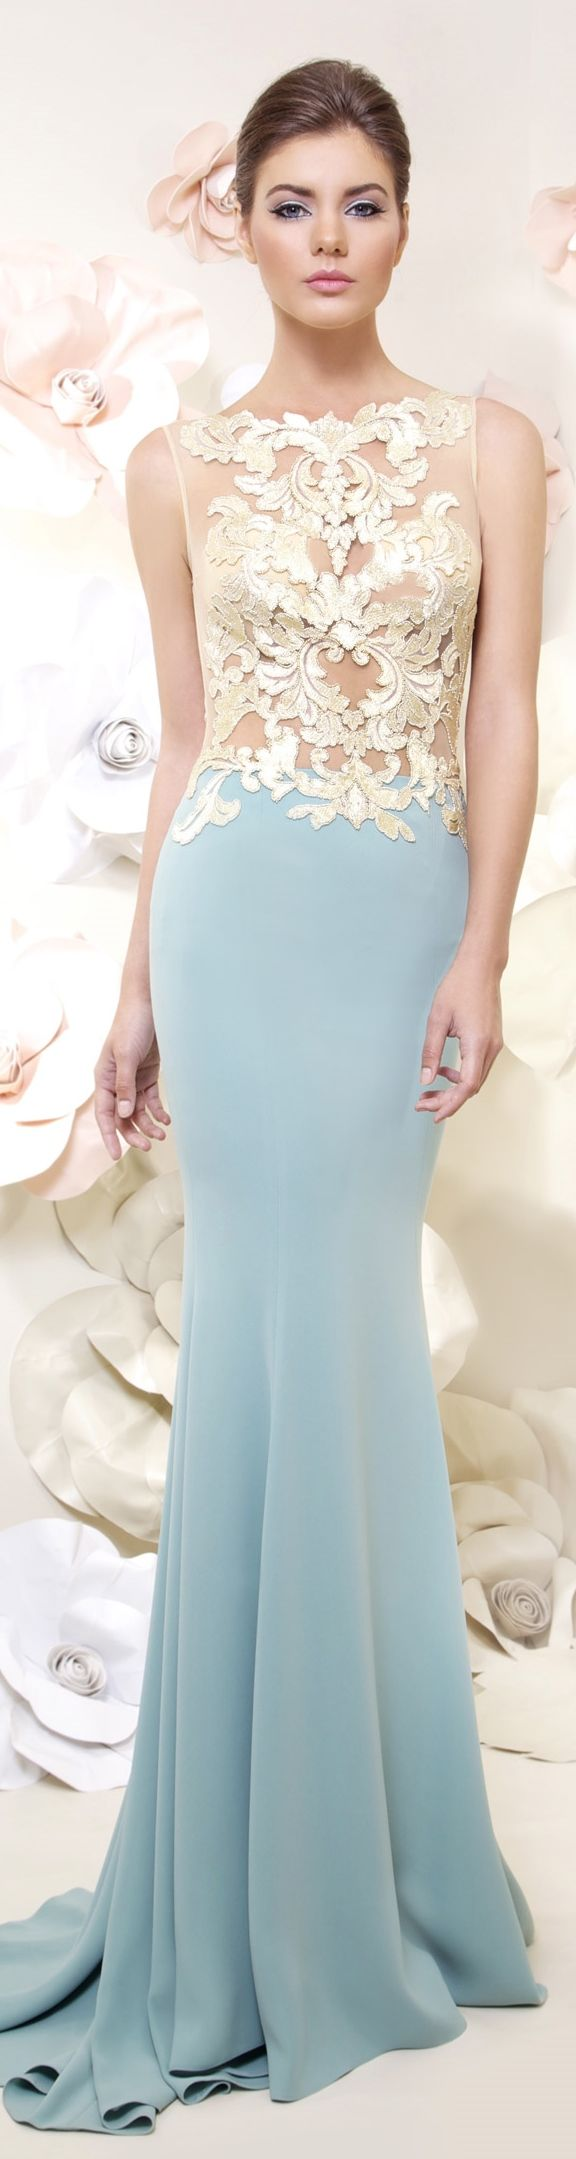 Light blue gold applique mermaid trumpet gown haute couture